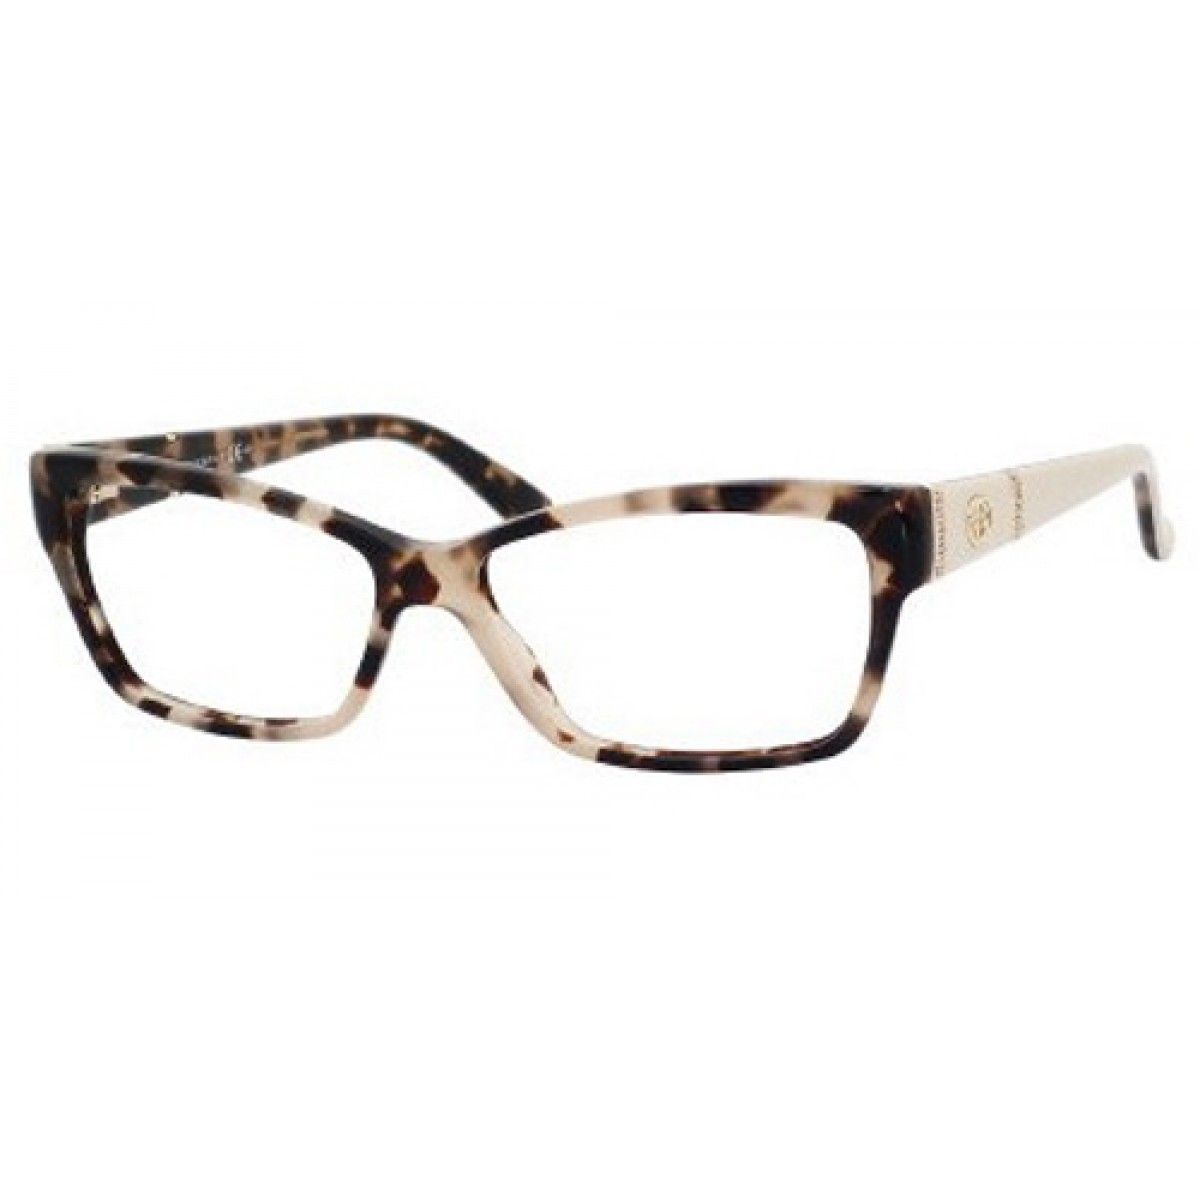 f4e9d59a701c5 The Havana and Bone combination in this Gucci frame is a big seller at  Ramsey Eye Care!